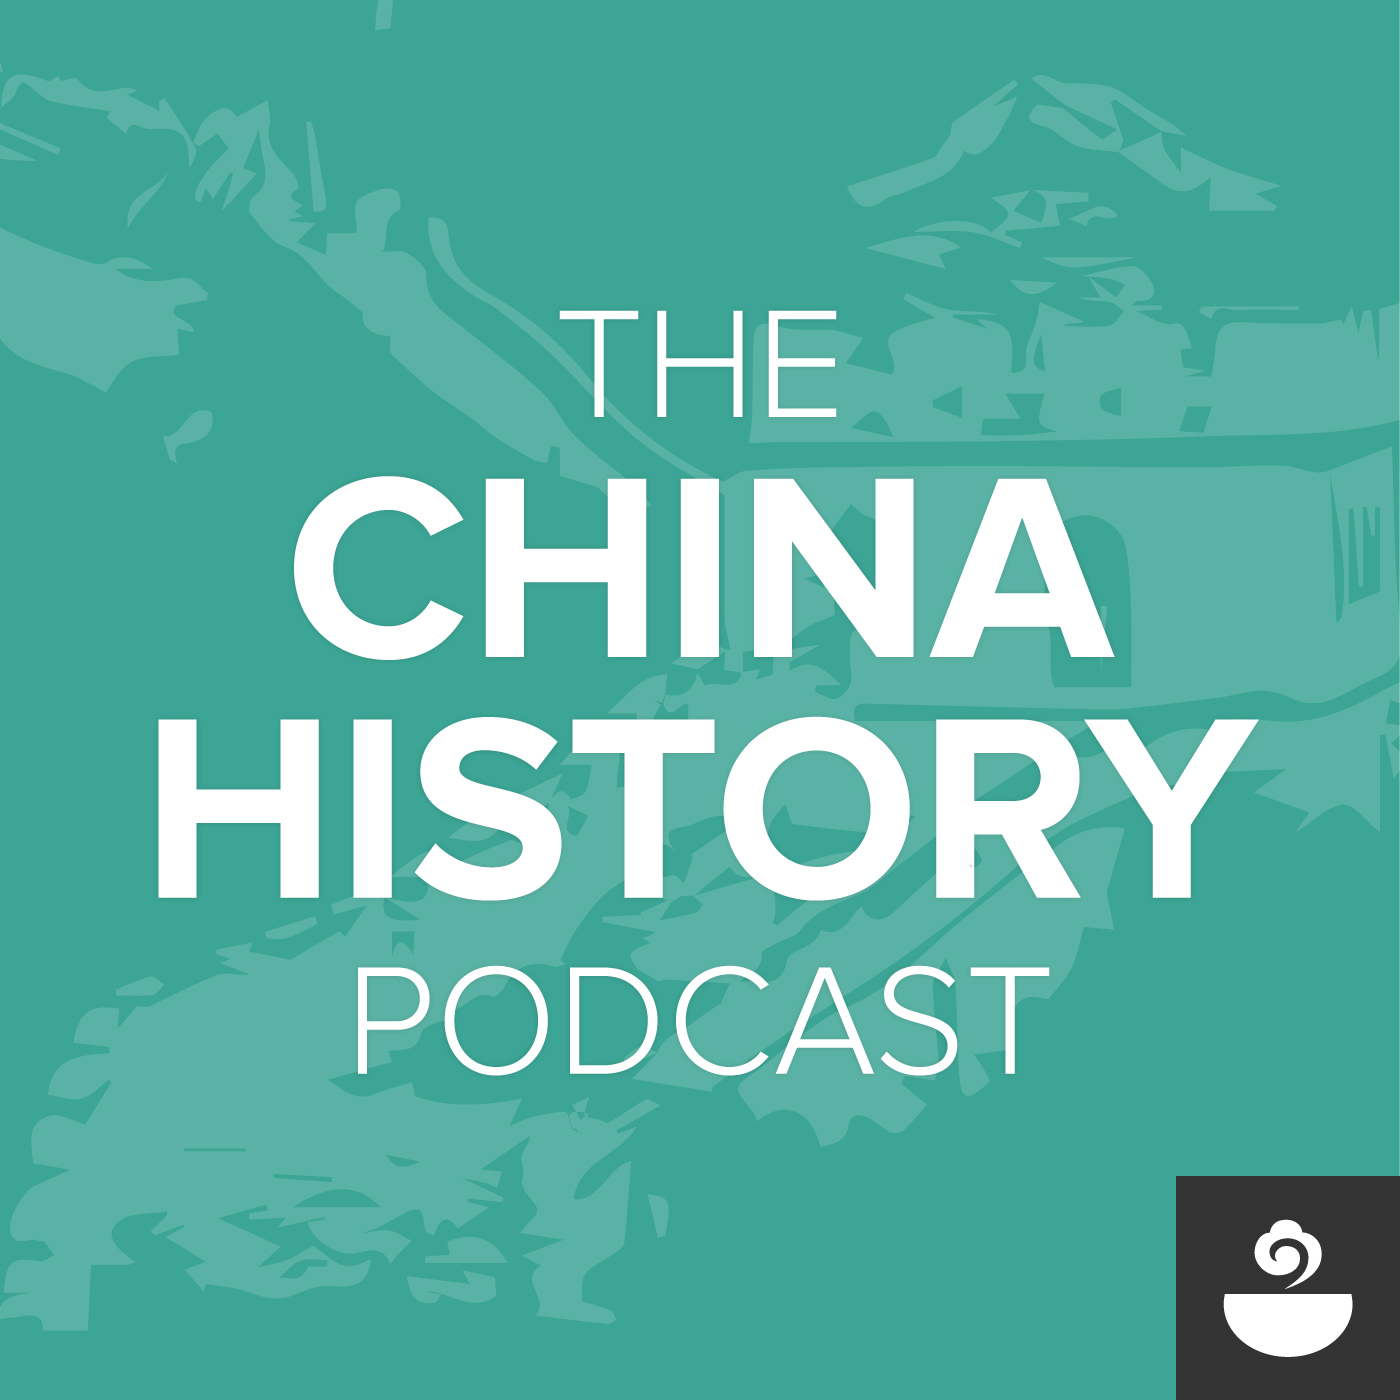 Welcome to the China History Podcast